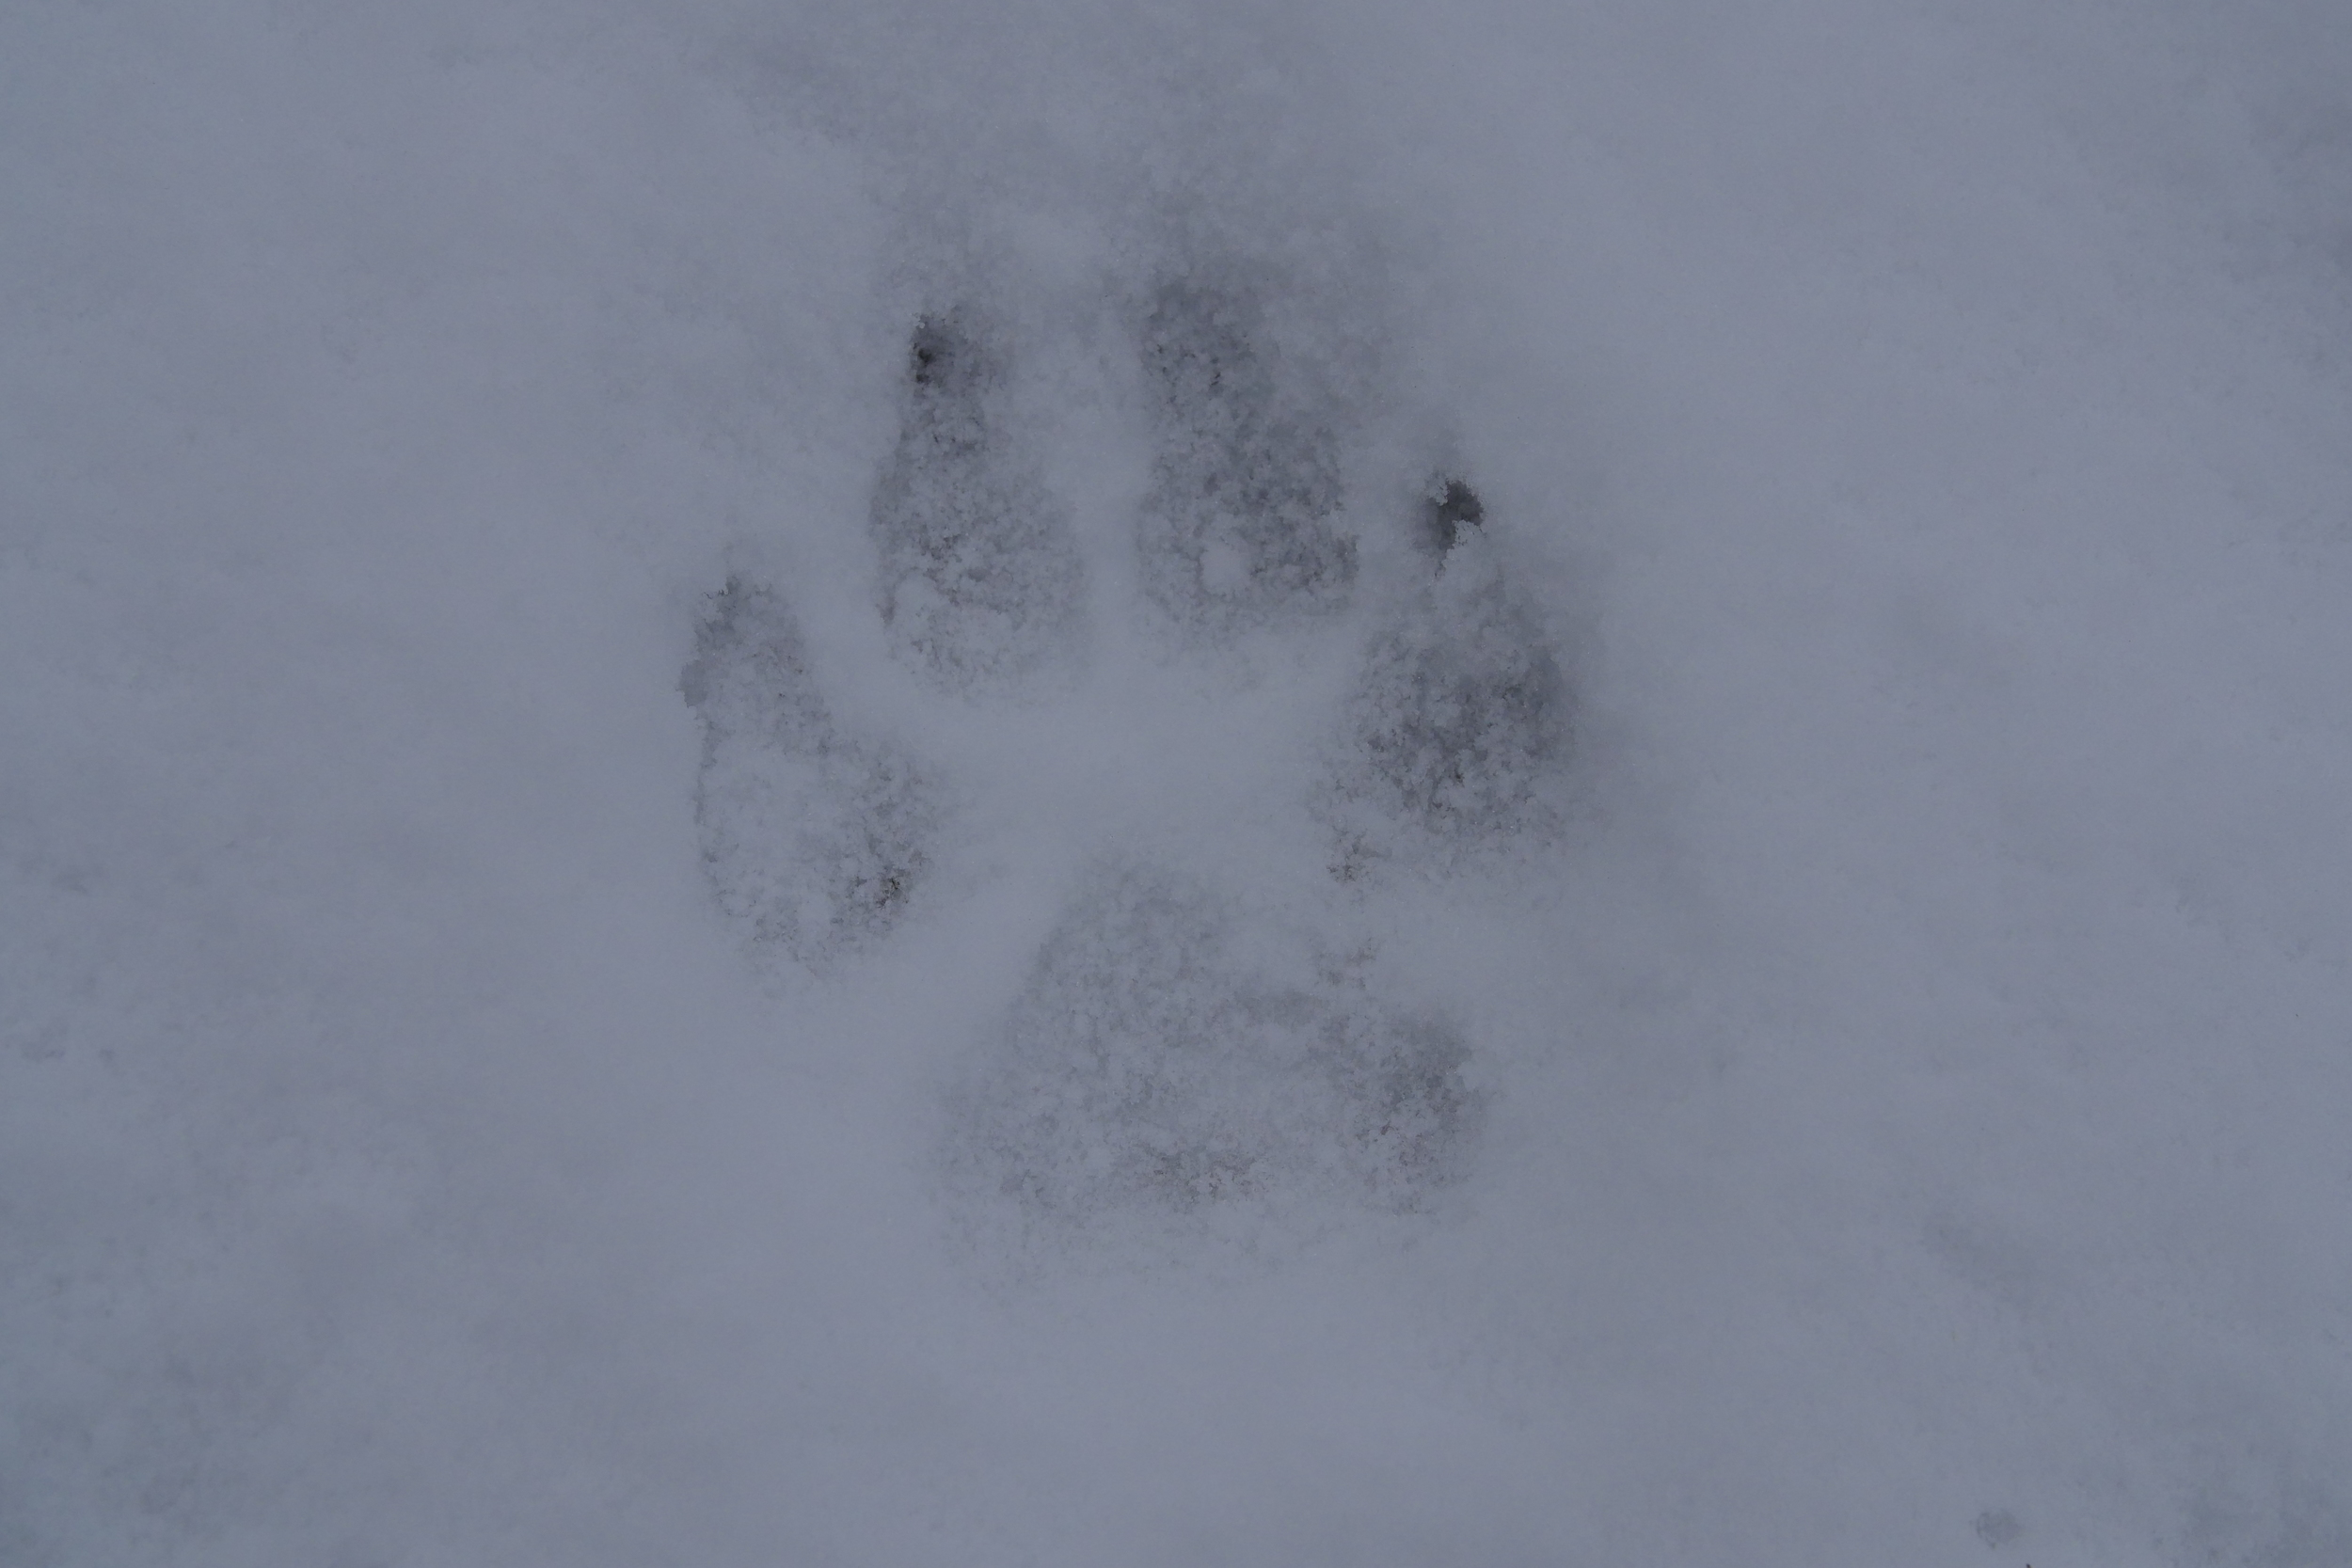 The paw print of a wolf in the South Selkirk